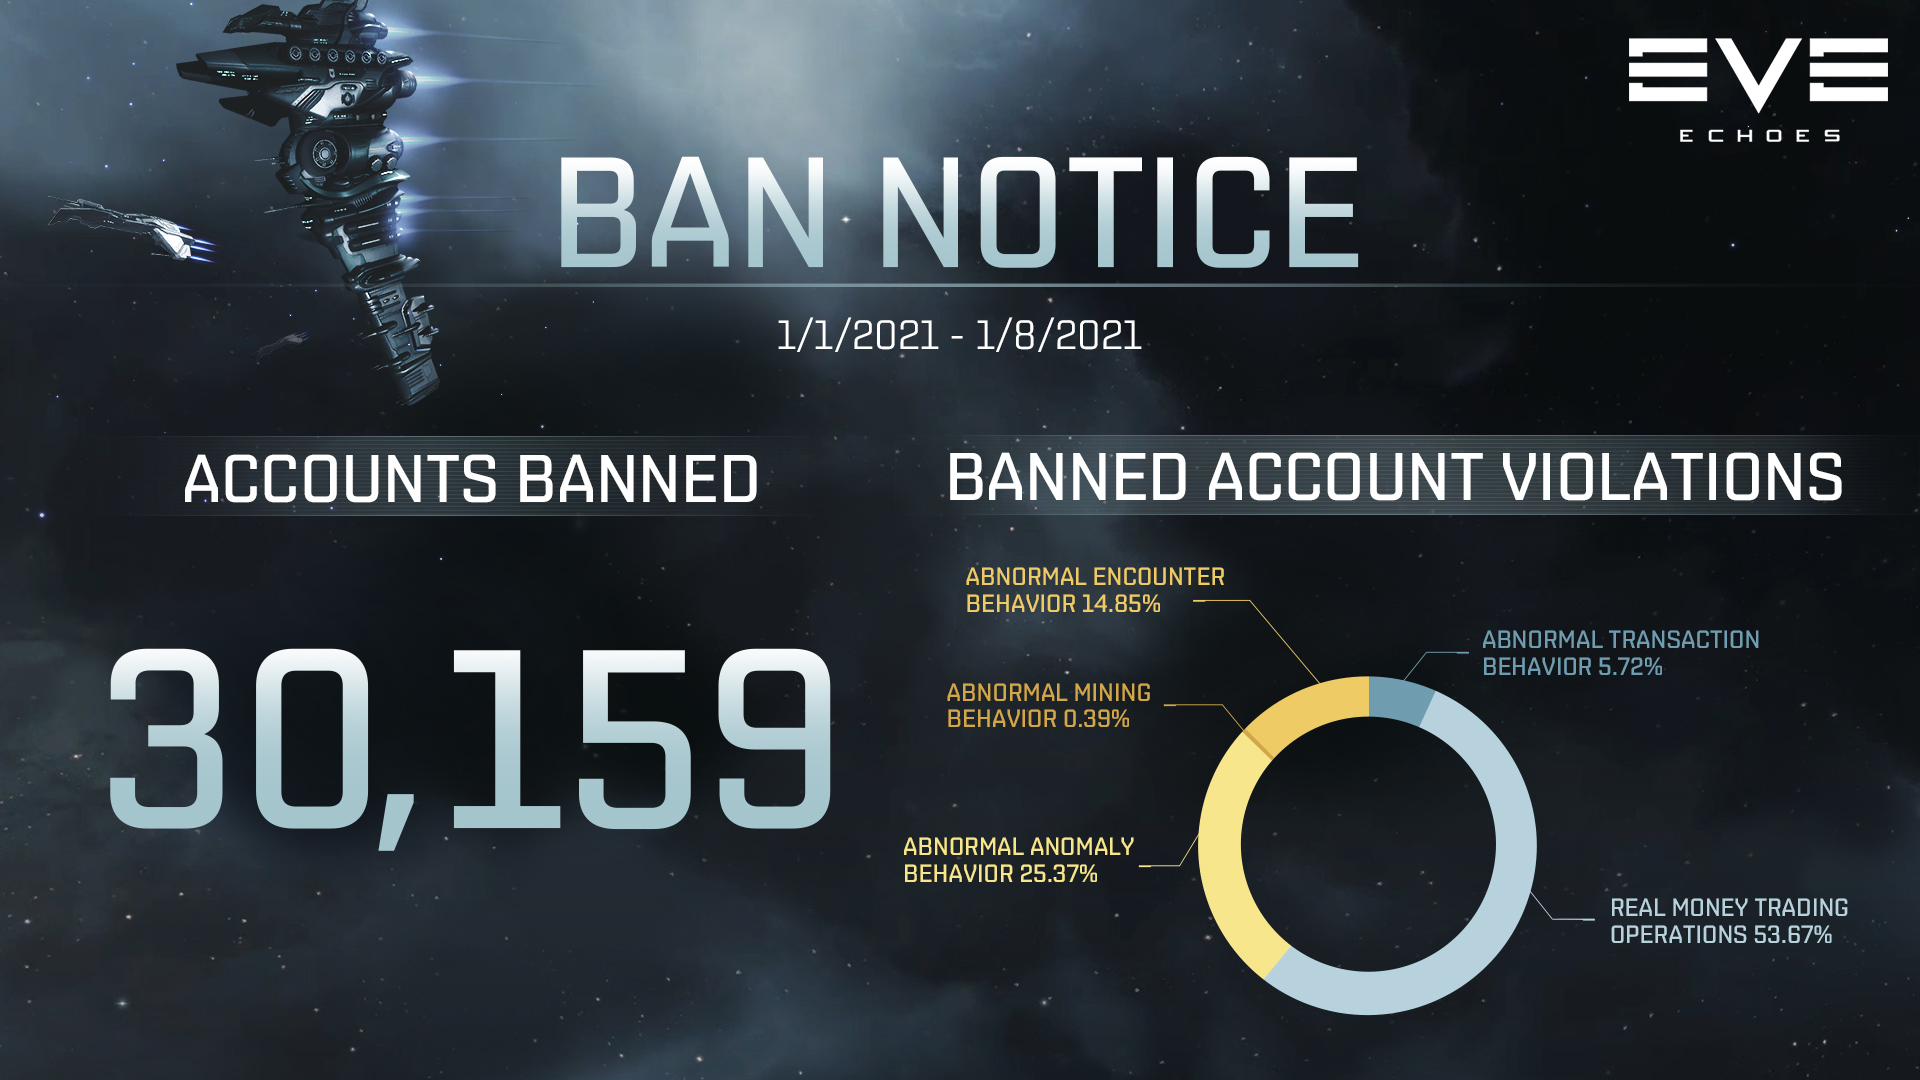 Ban Notice for 01/01-01/08